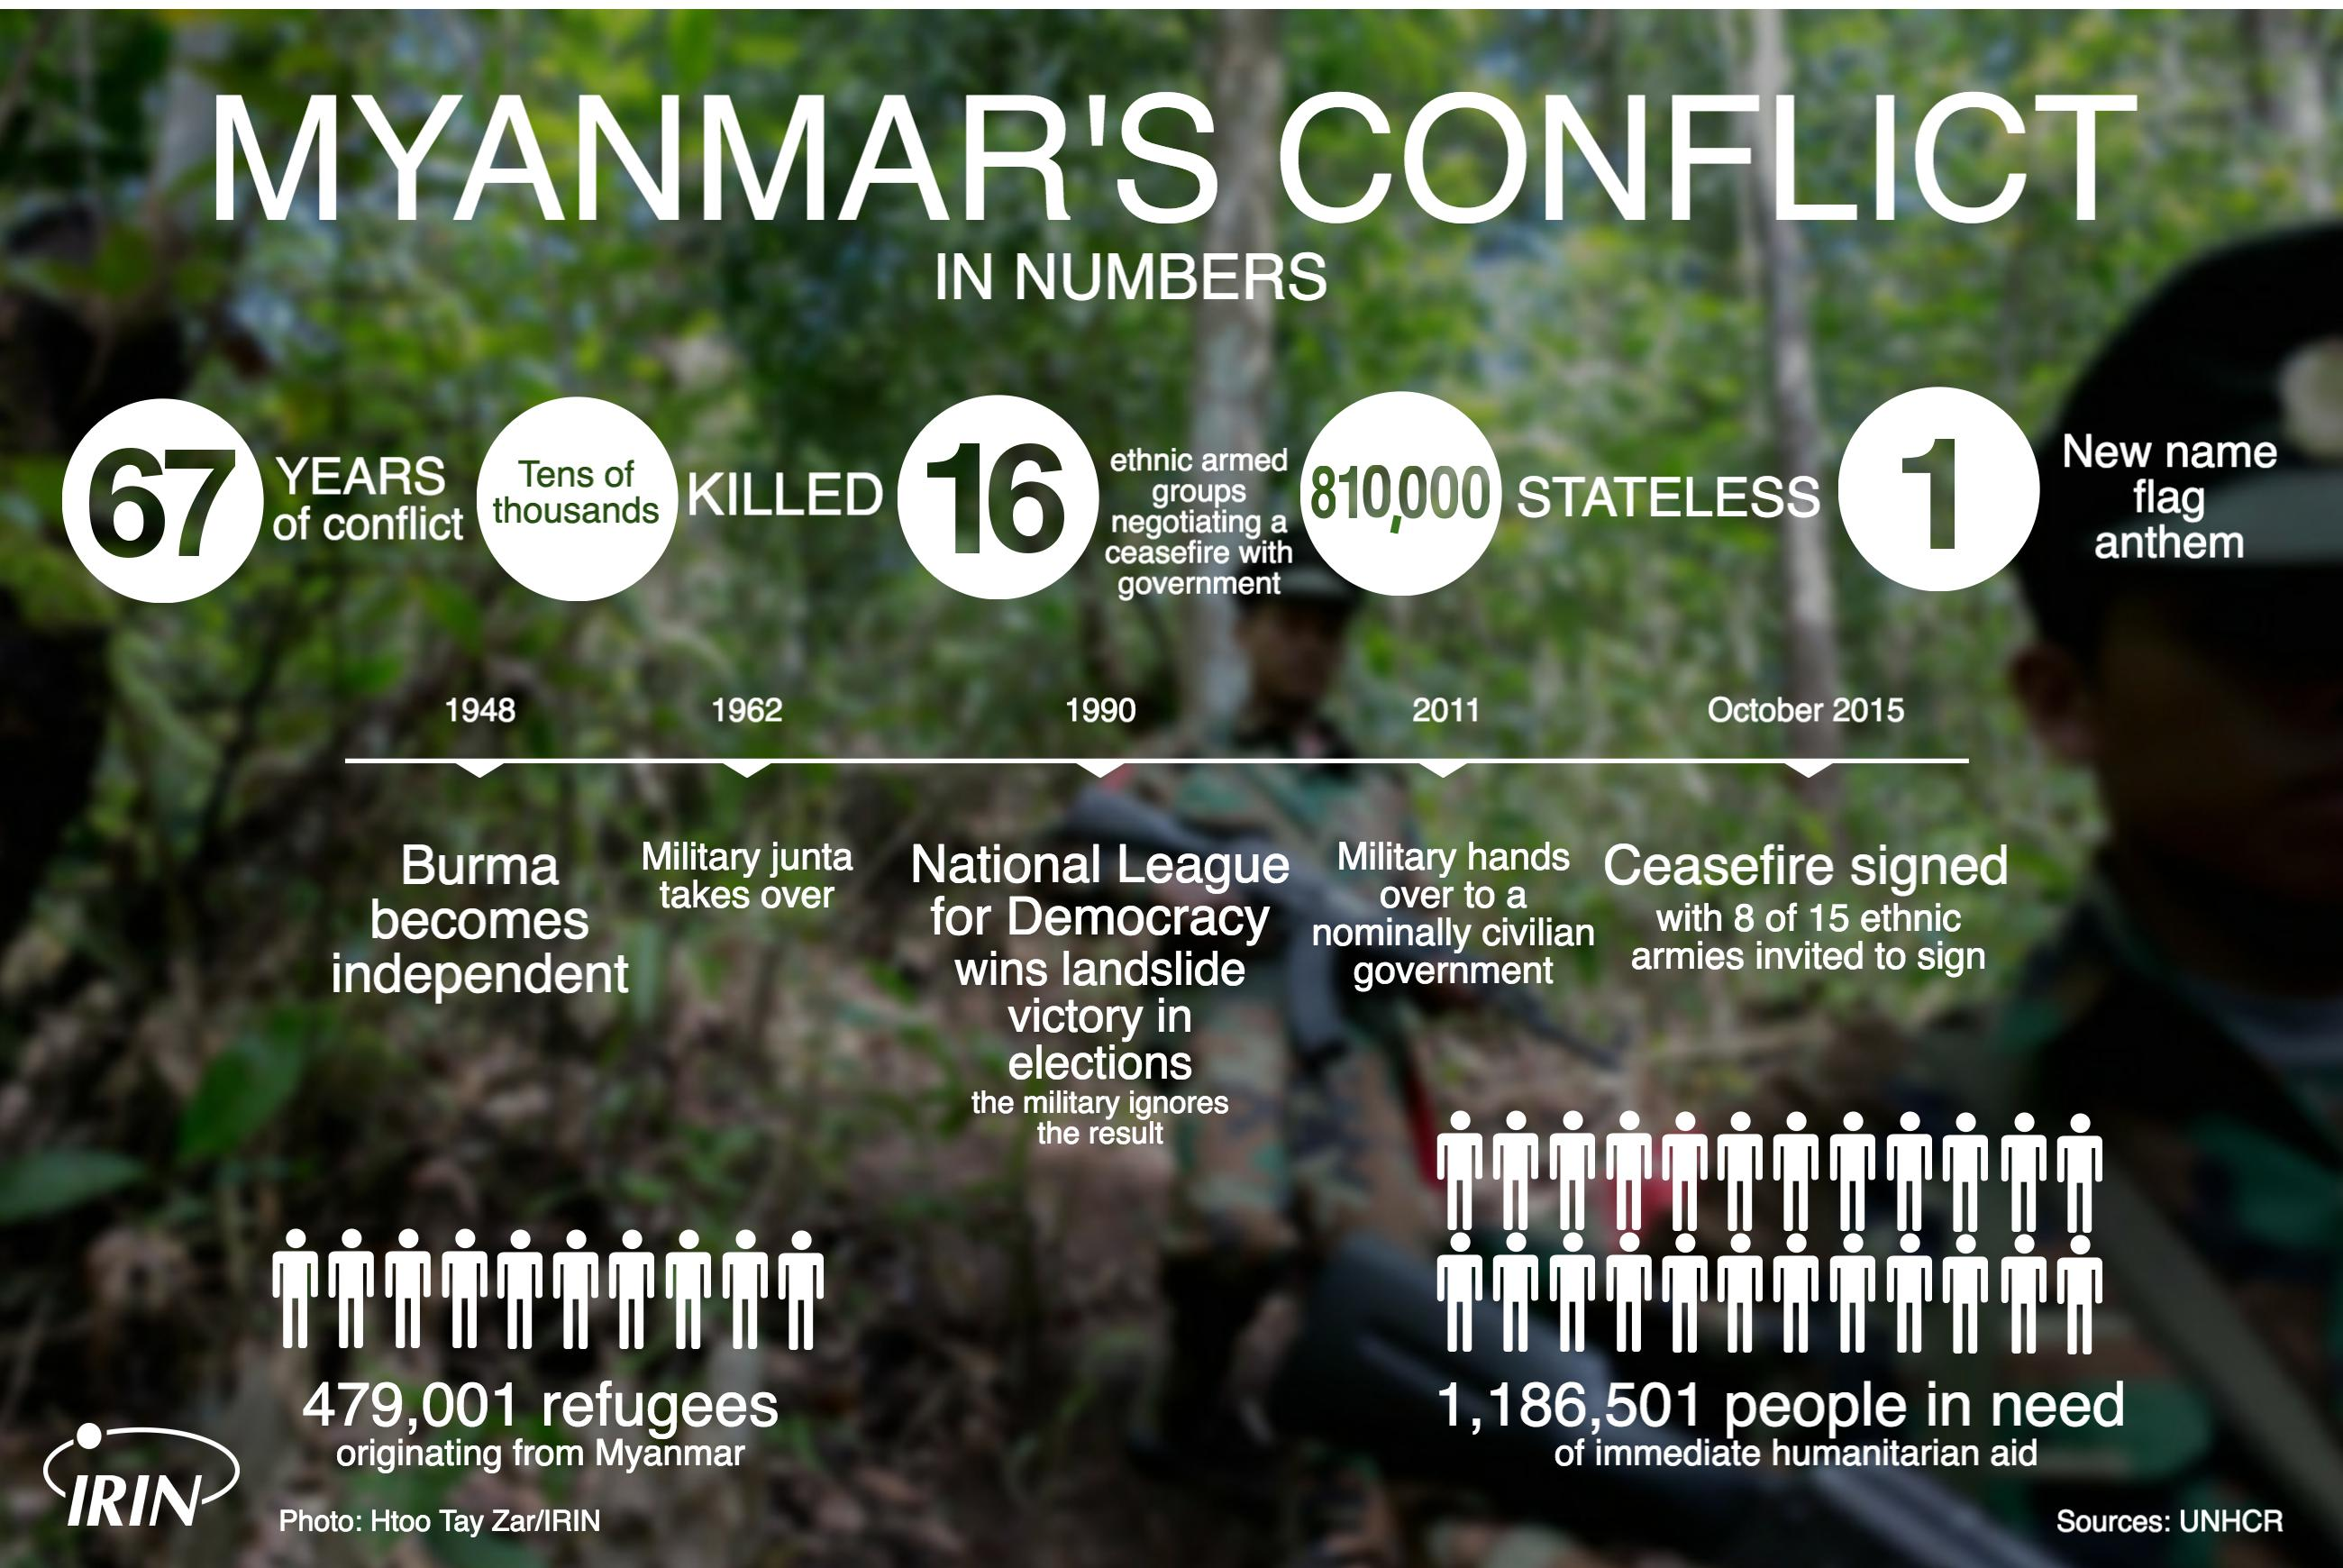 Myanmar conflict in numbers